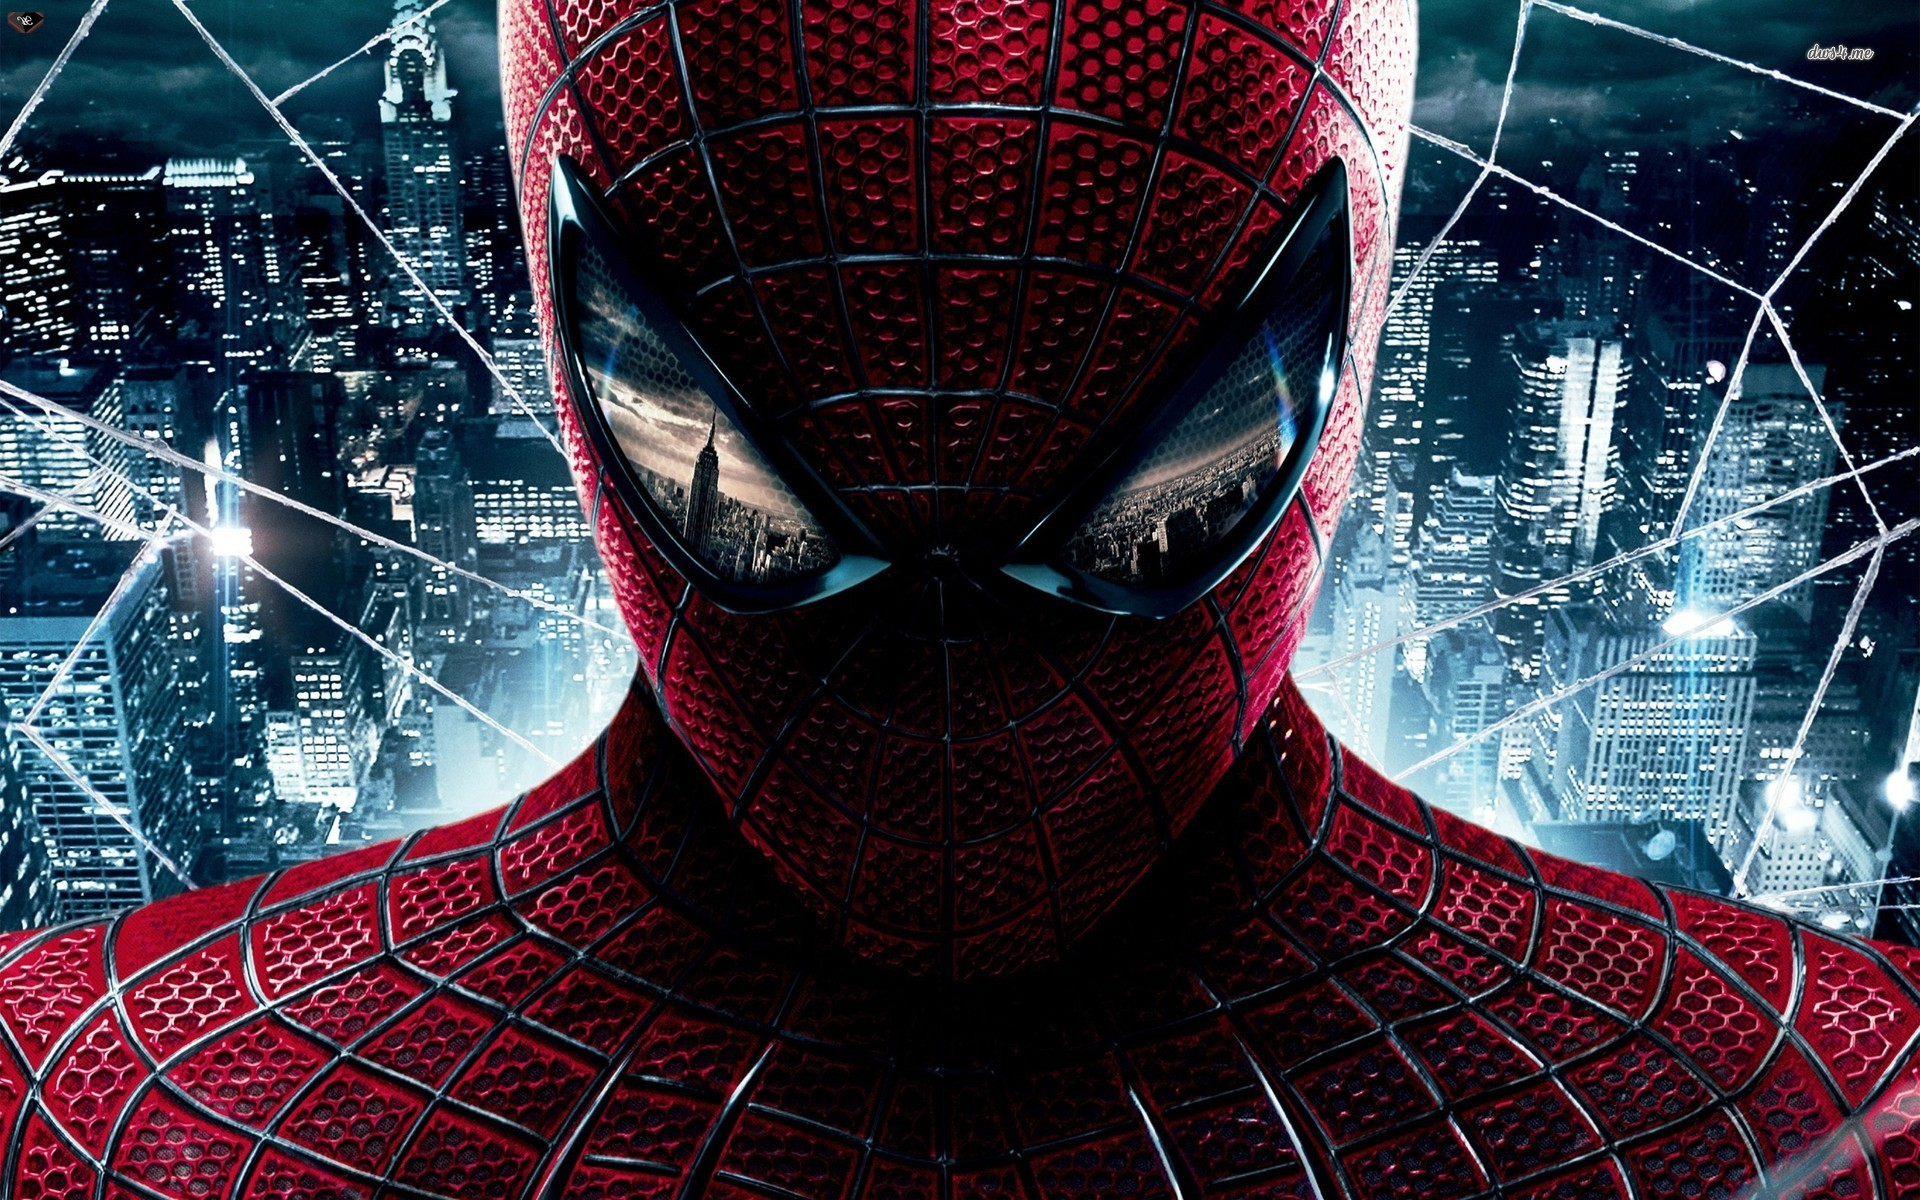 [Review]The Amazing Spider Man (2012)